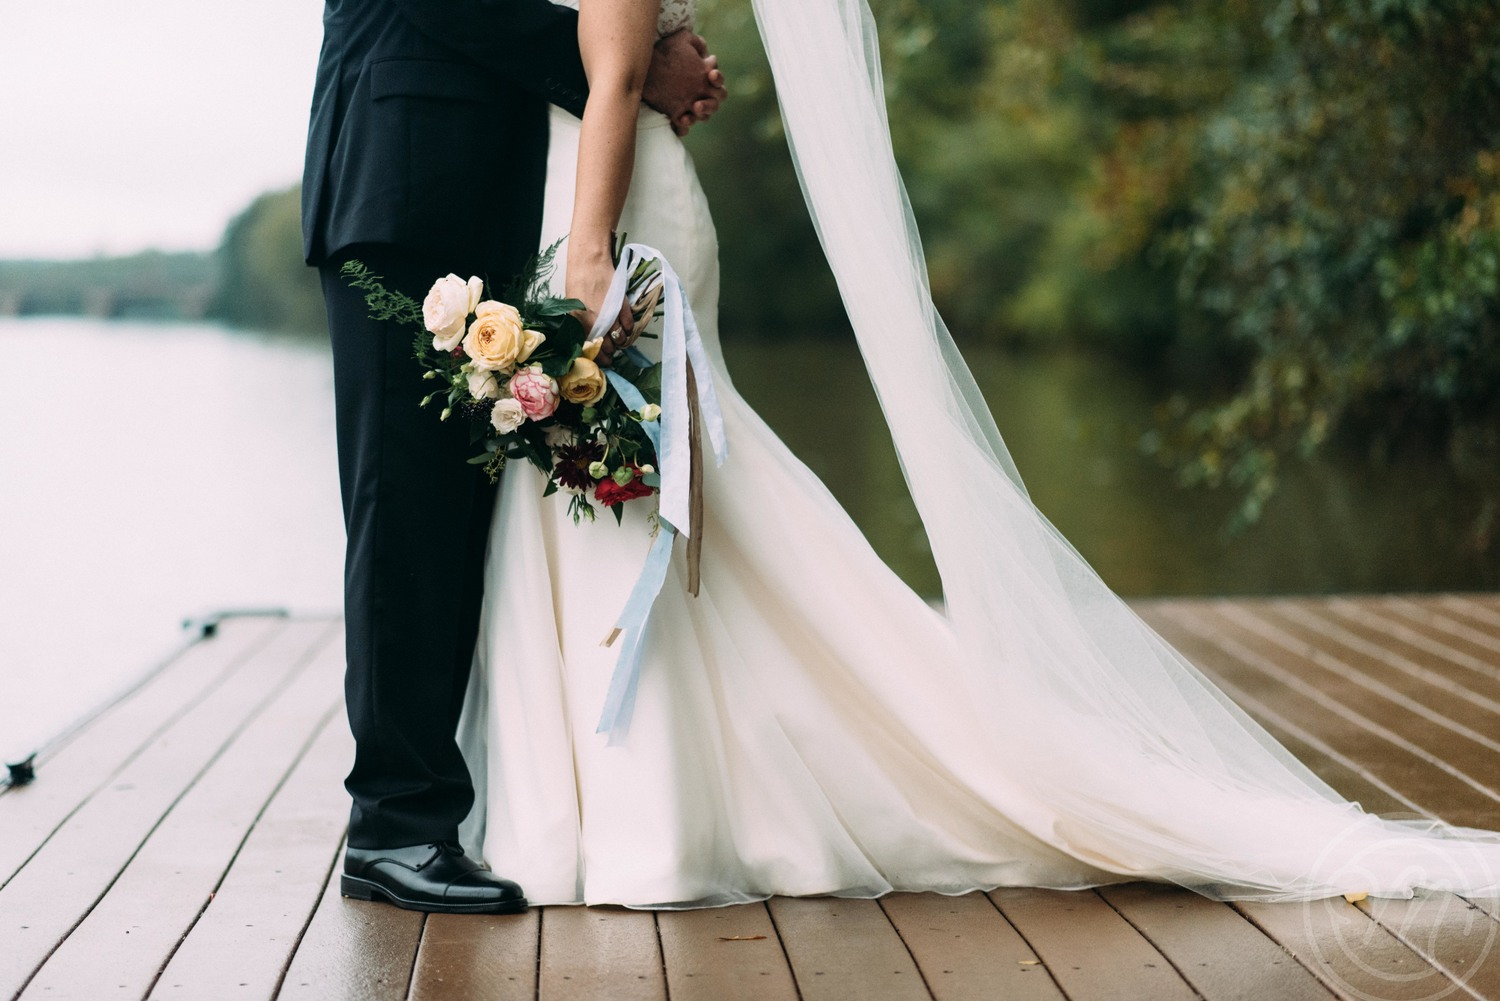 mary-claire-photography-ivory-and-beau-bridal-boutique-savannah-wedding-dresses-savannah-wedding-planner-savannah-weddings-savannah-bridal-gowns-blush-by-hayley-paige-wedding-dress-may-lace-mermaid-16.jpg